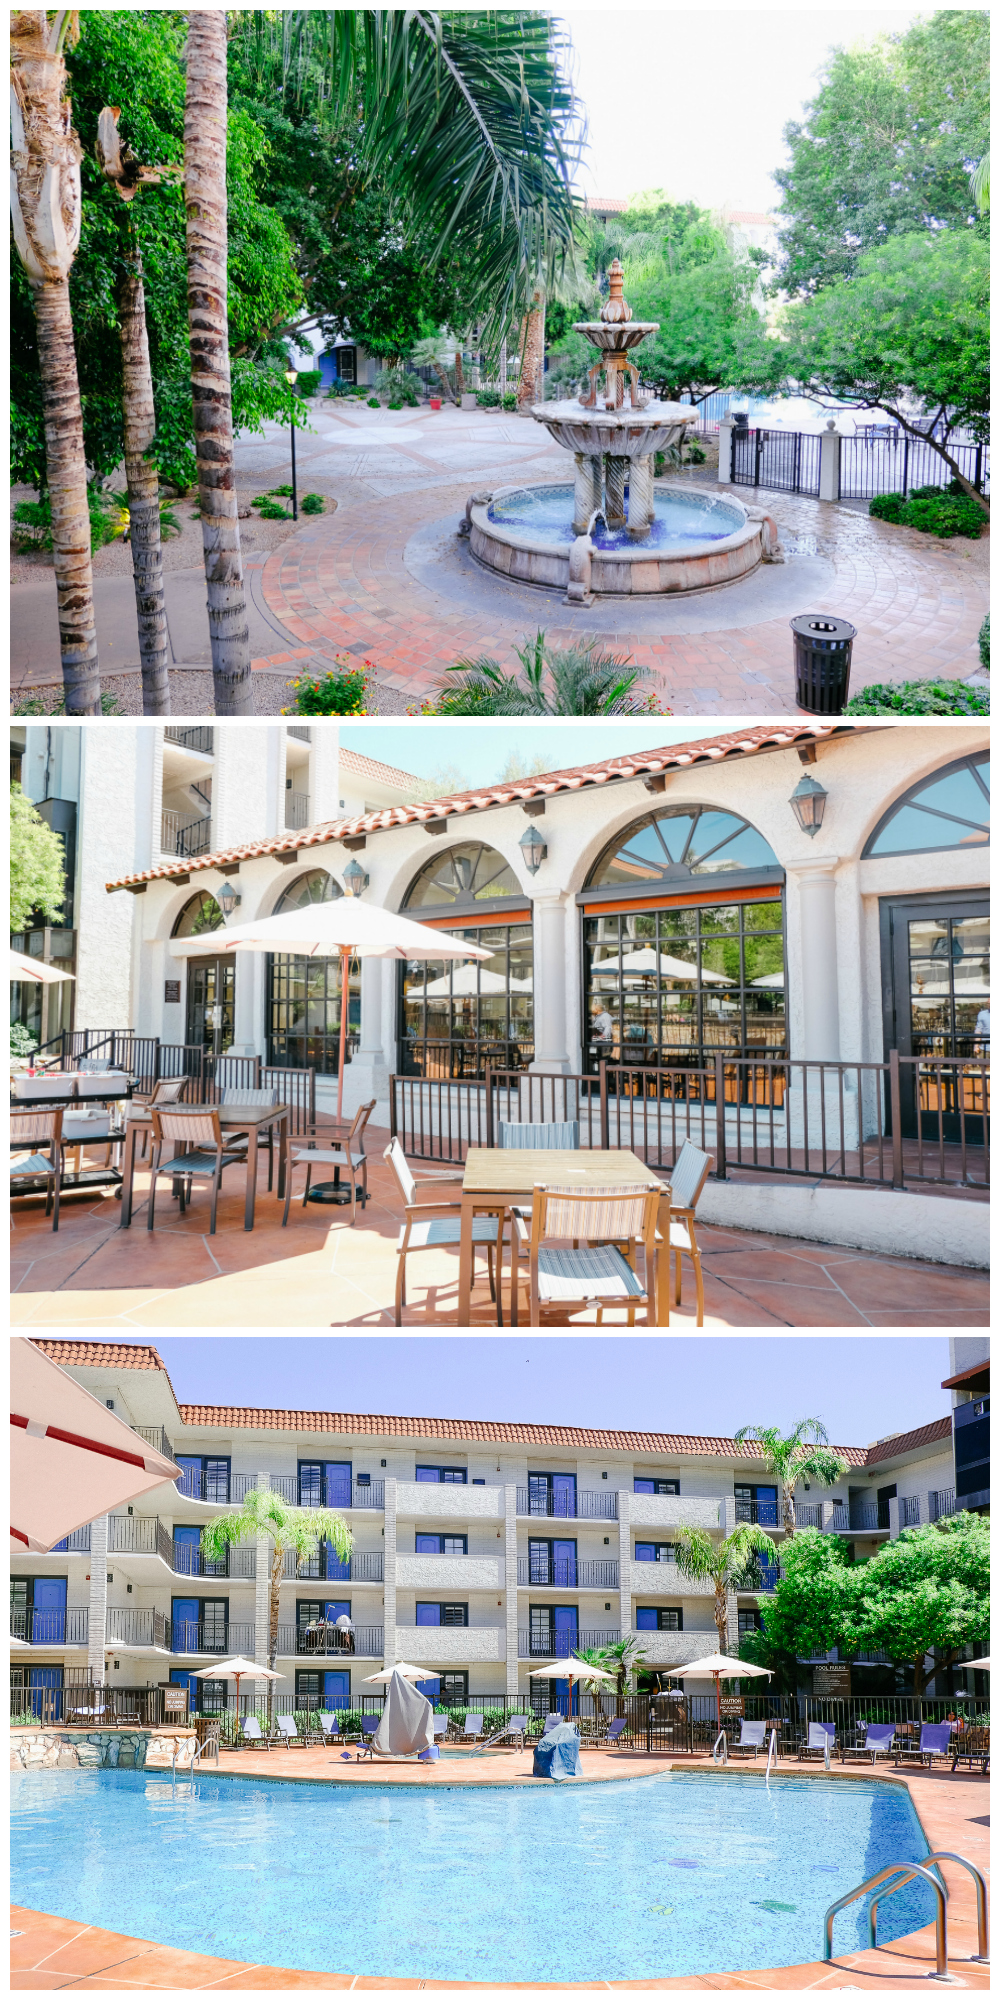 Family Fun at Embassy Suites by Hilton in Scottsdale